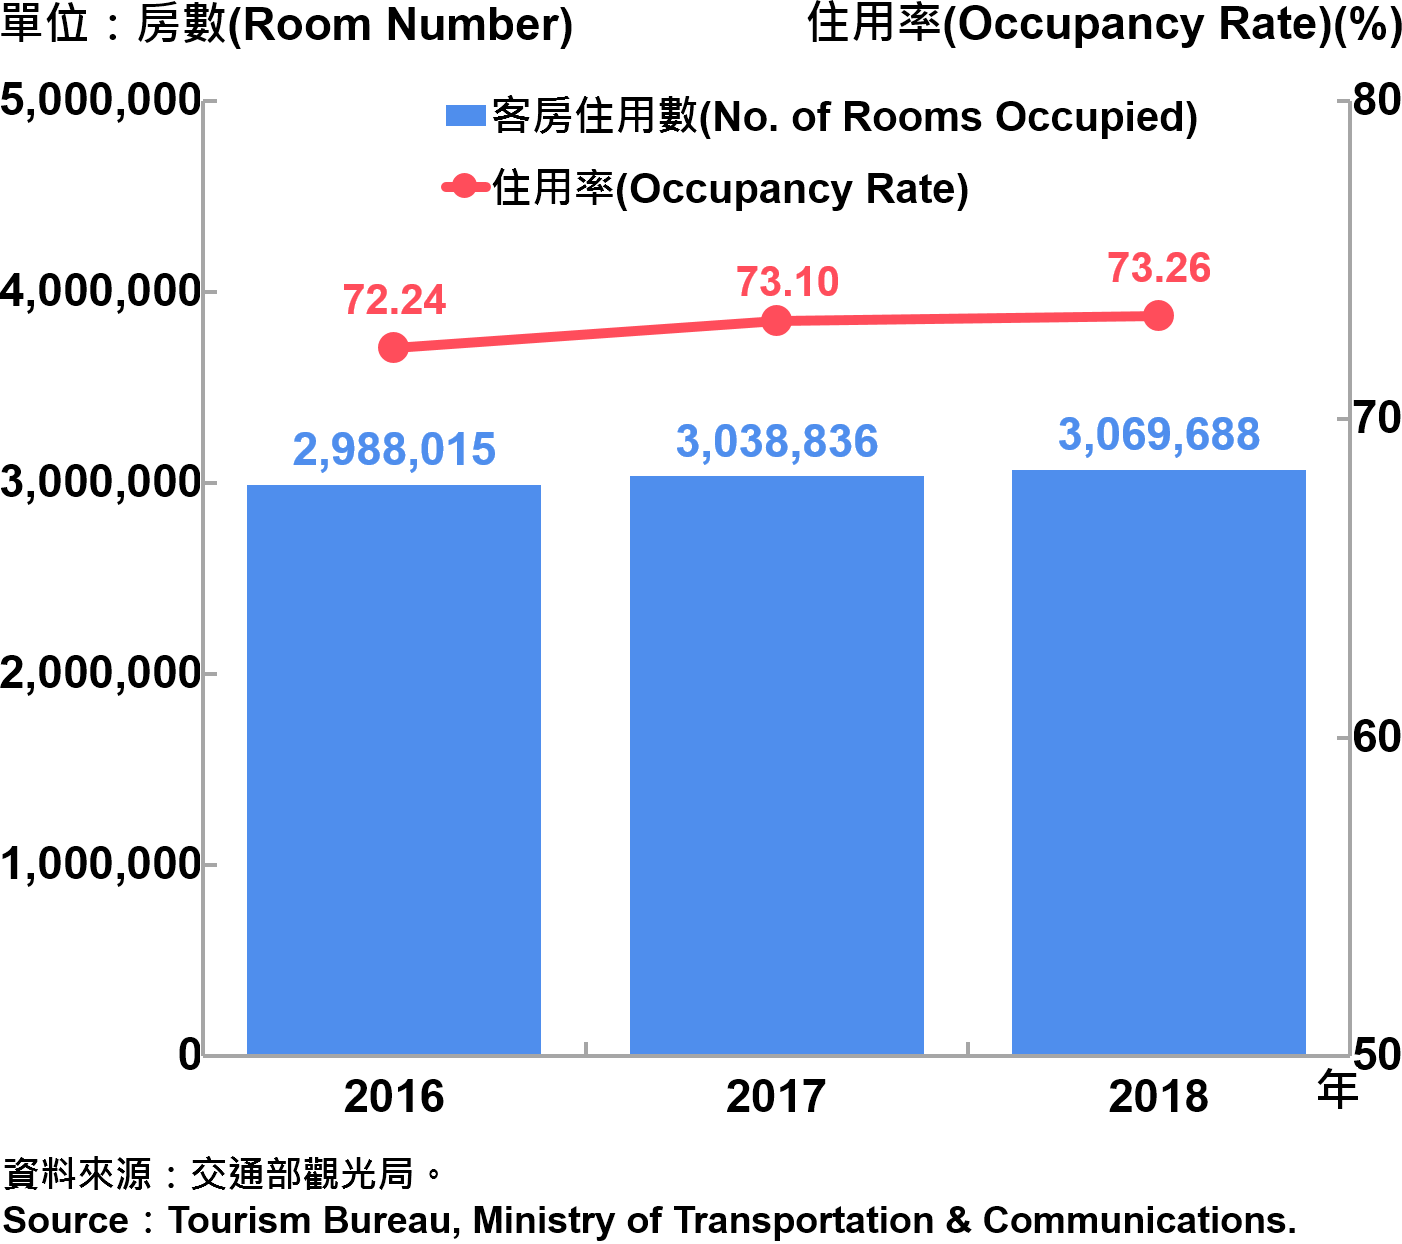 臺北市觀光旅館客房住用率統計—2018 Occupancy Rate on Tourist Hotel Operations in Taipei City—2018